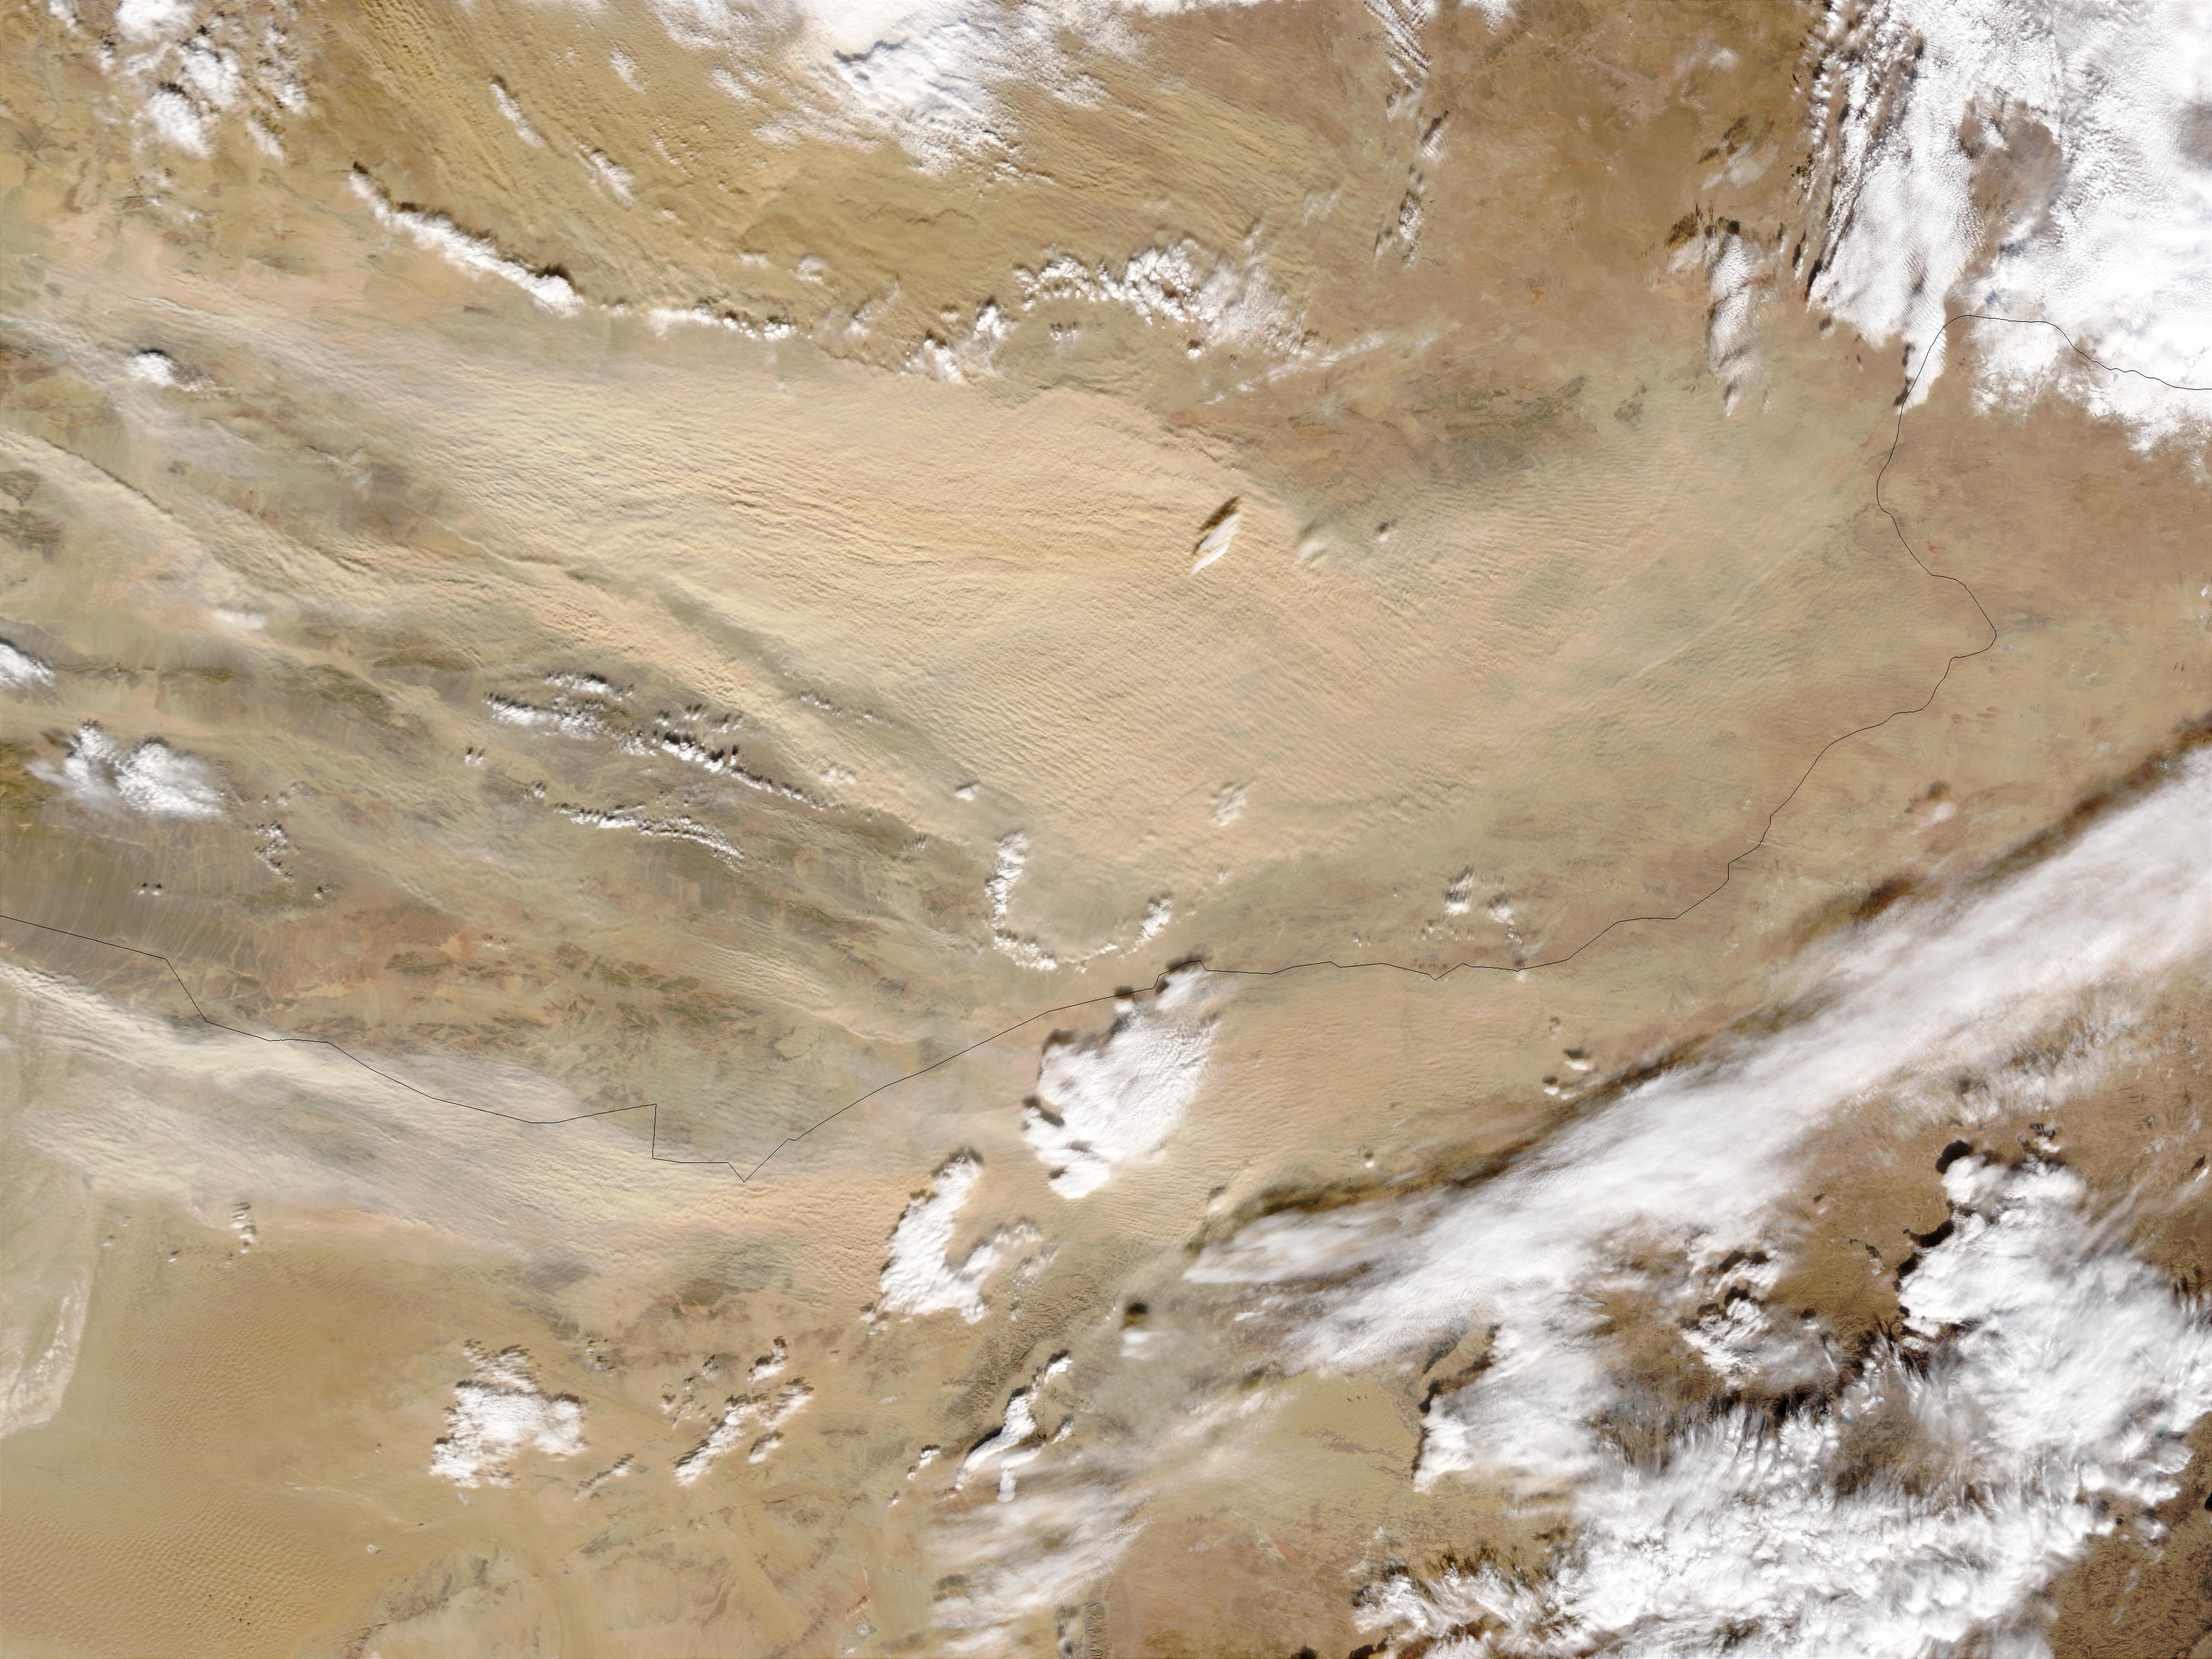 Dust storm in Gobi Desert, Mongolia - related image preview